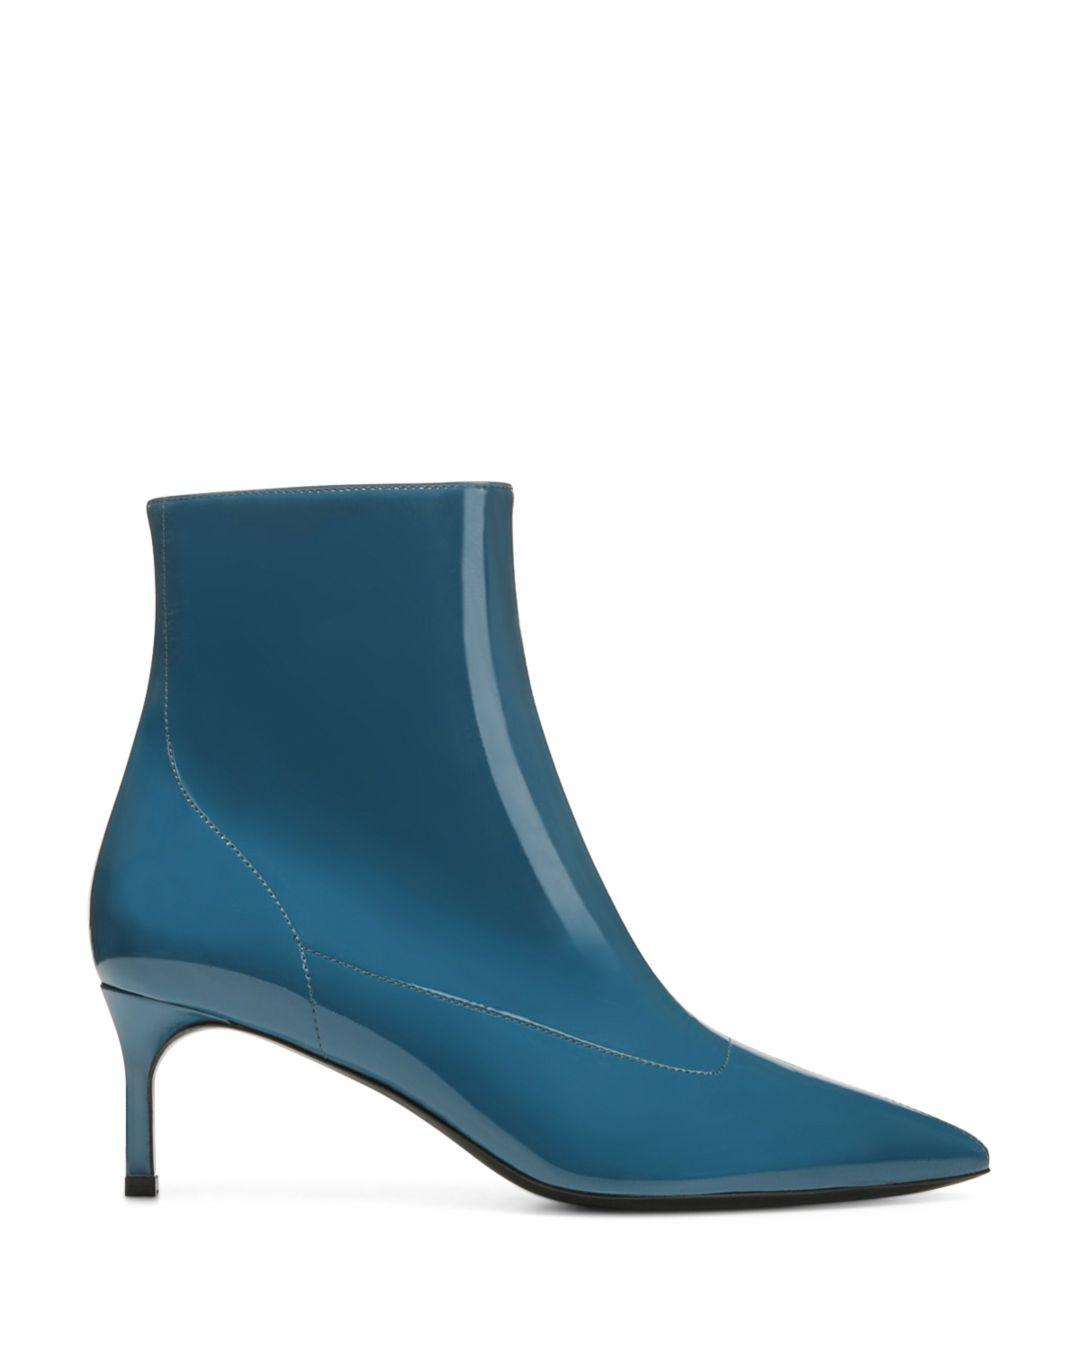 83f16a0668e Lyst - Via Spiga Women s Baronne Pointed Toe Kitten Heel Booties in Blue -  Save 40%